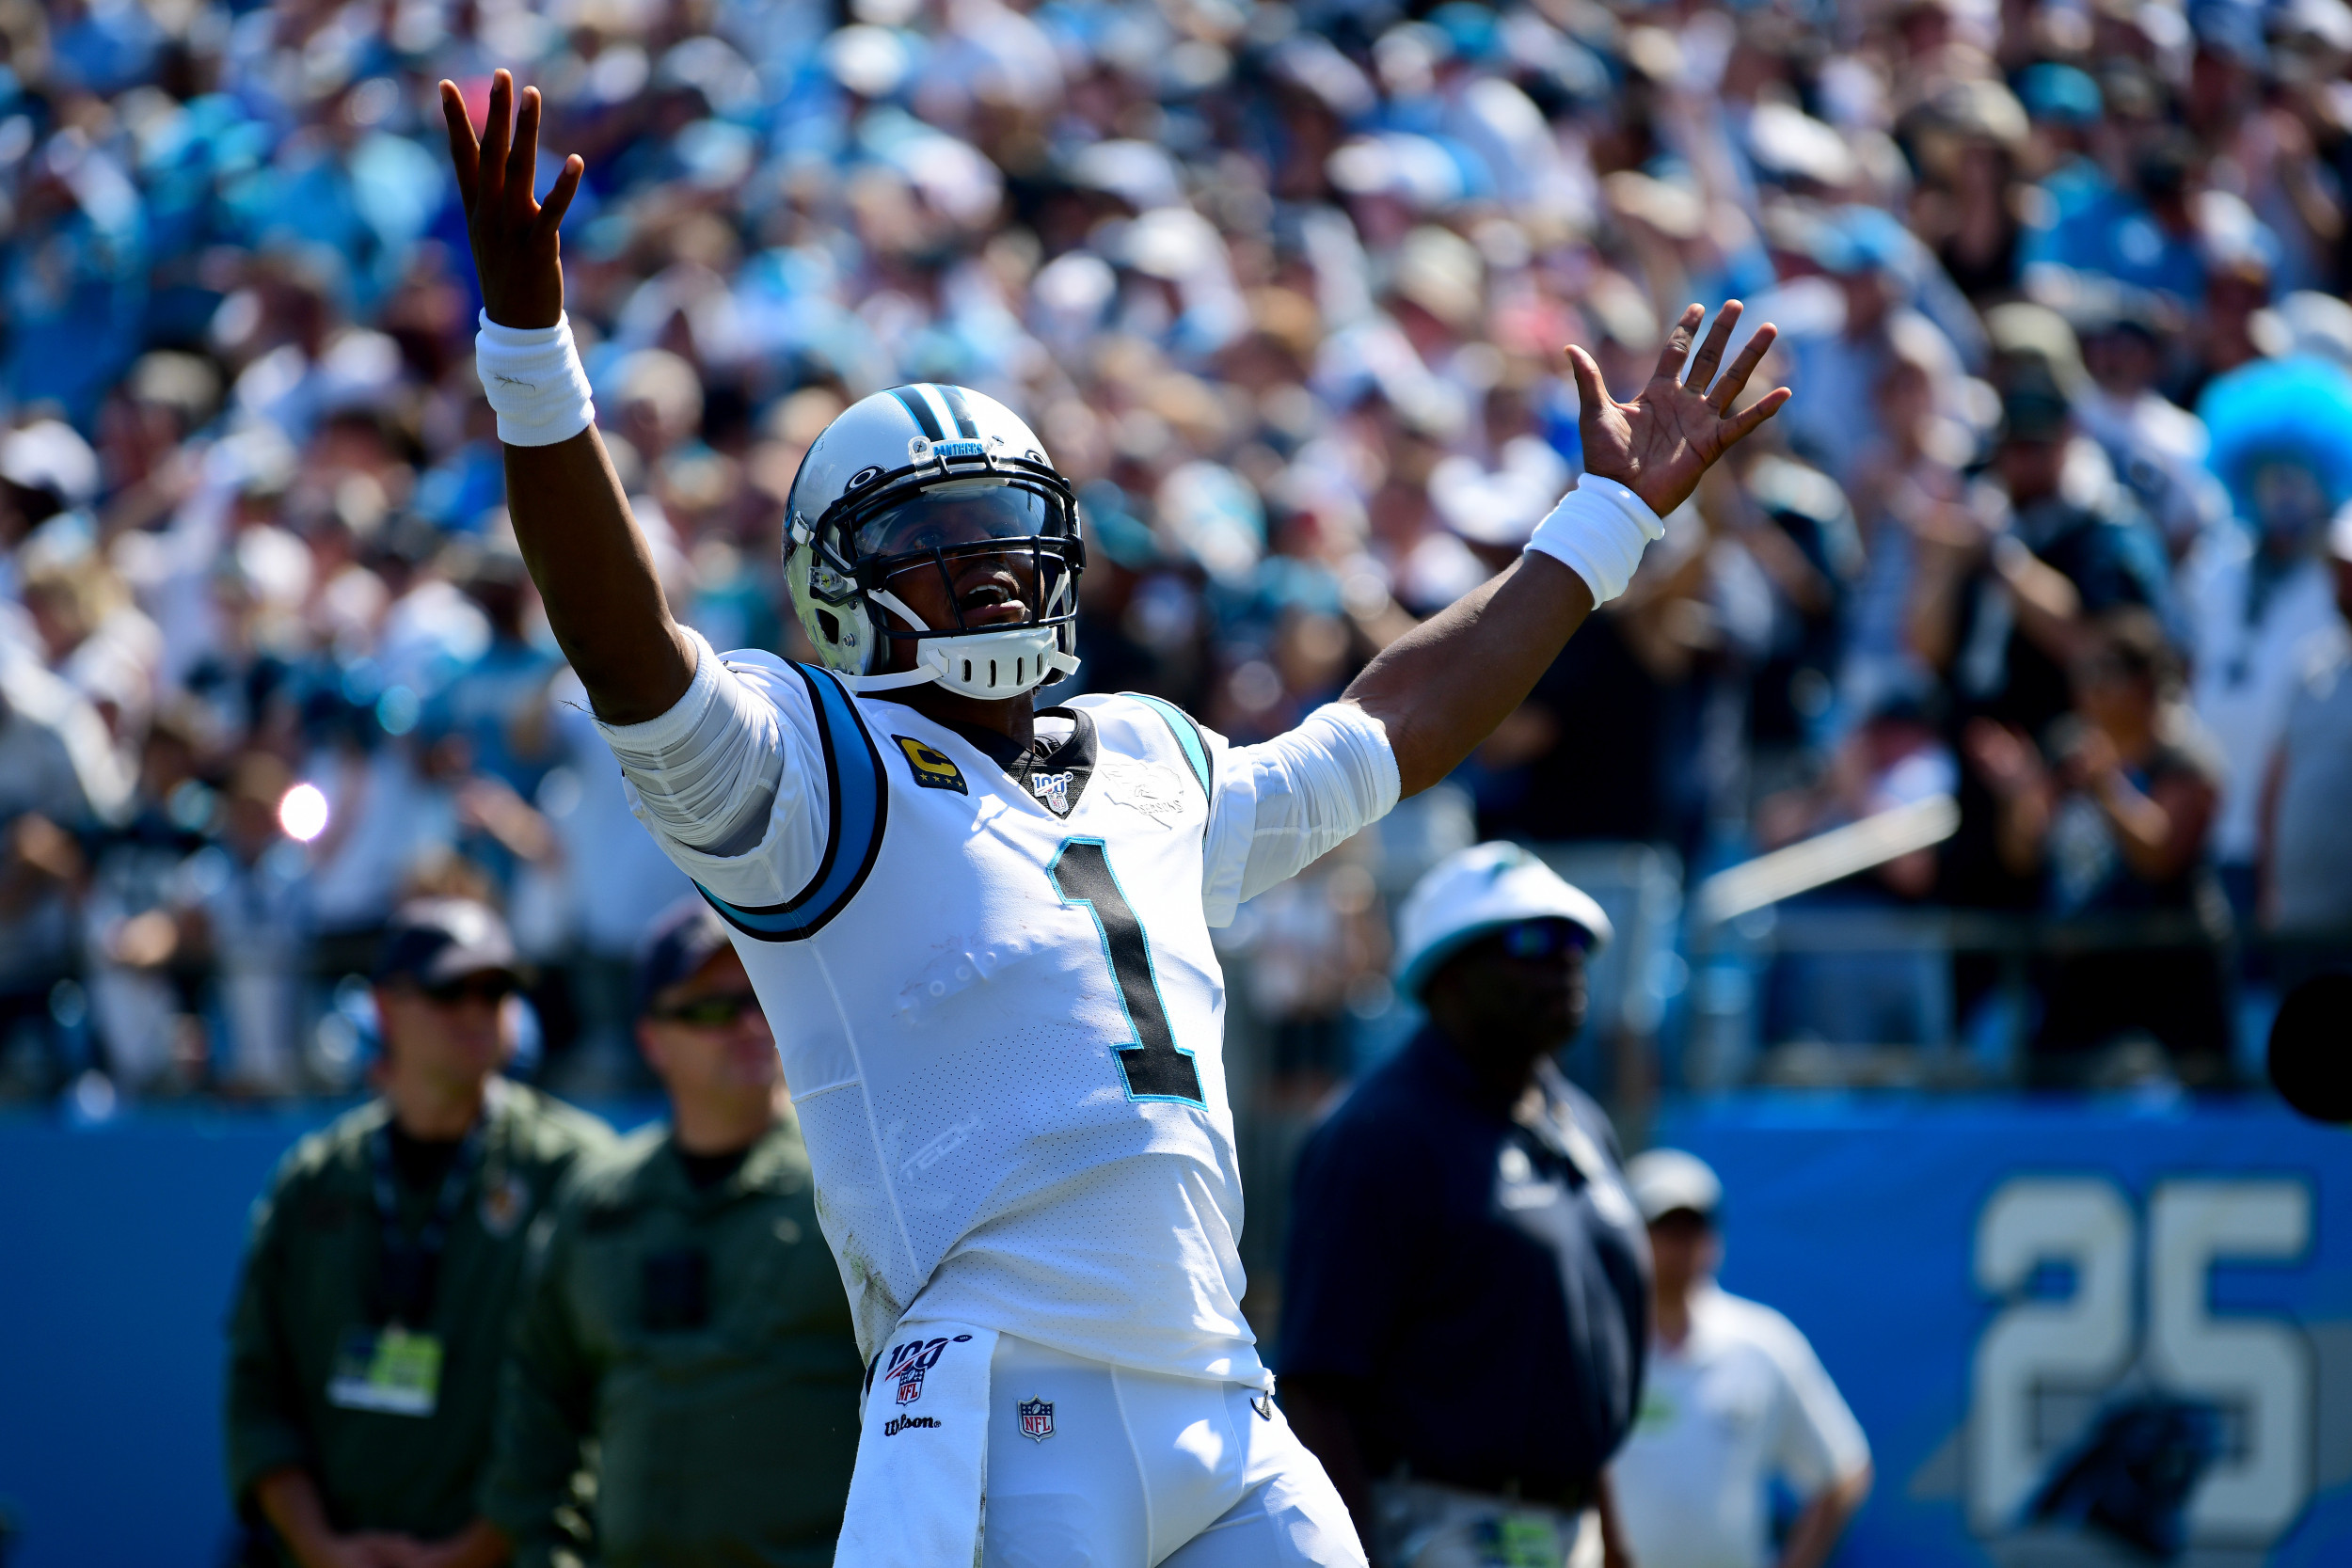 Nfl Thursday Night Football Schedule Where To Watch Tampa Bay Buccaneers Vs Carolina Panthers Tv Channel Live Stream Odds